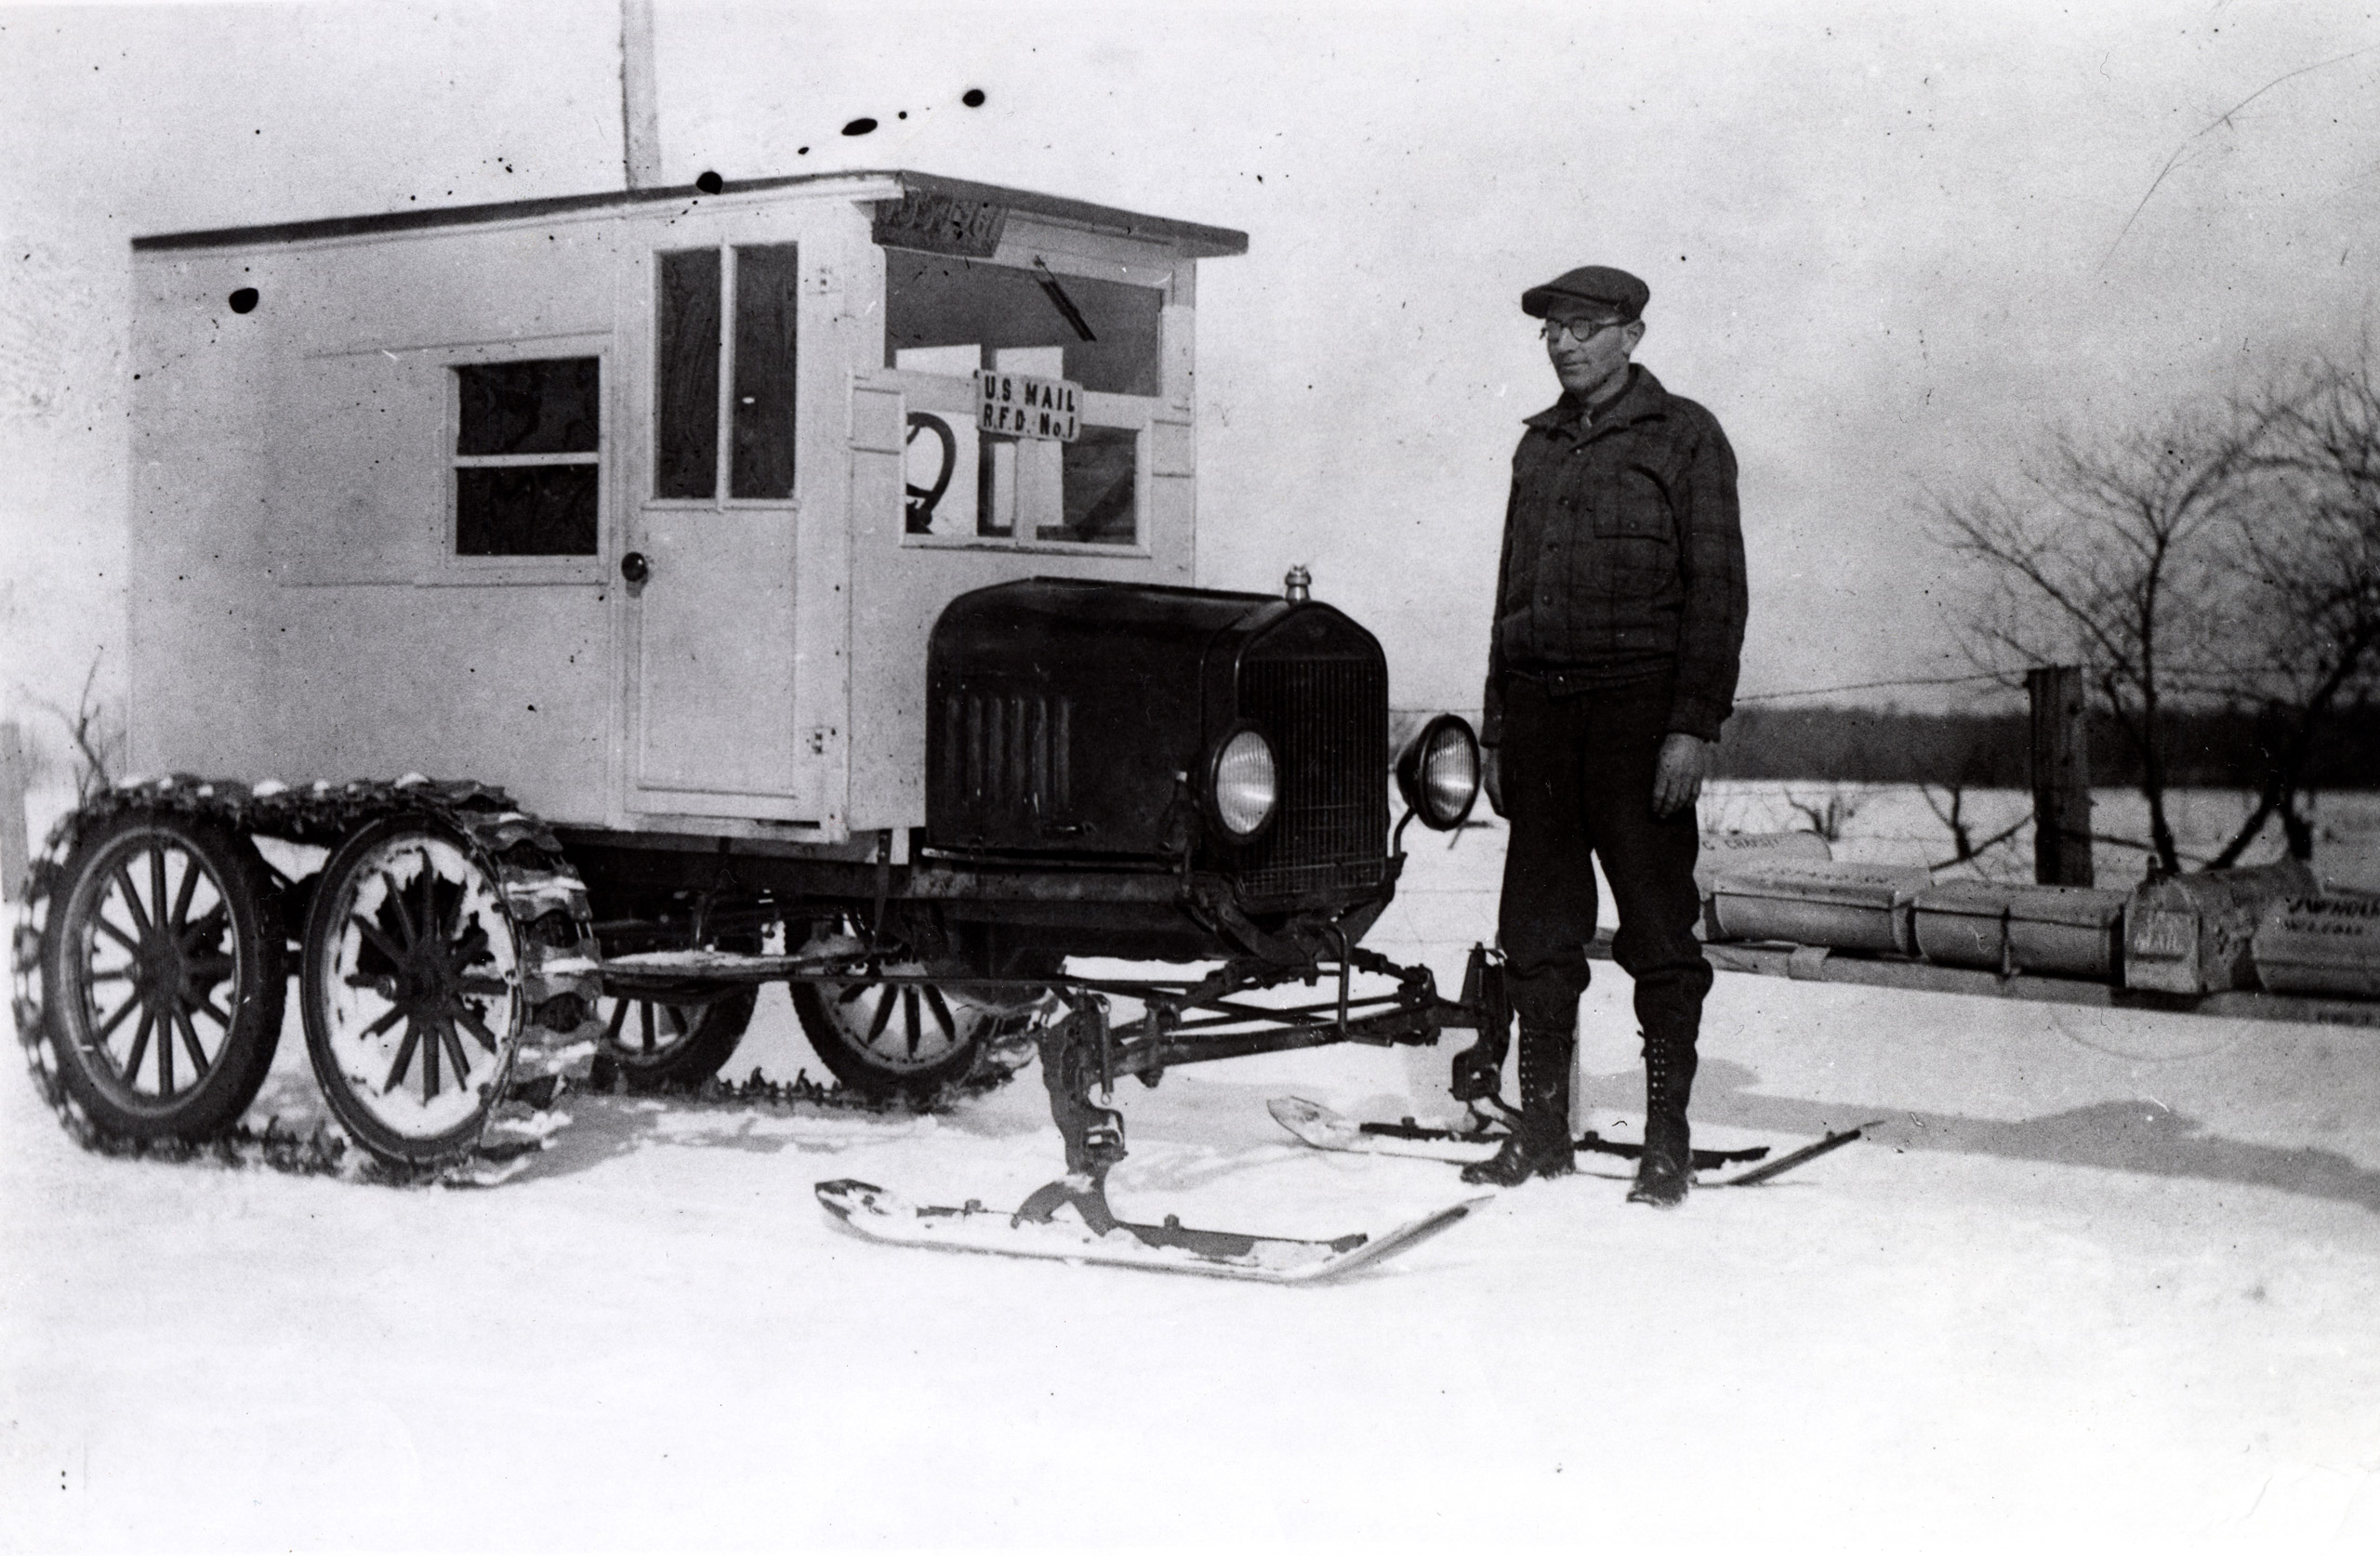 Rural carrier Lloyd Mortice created this unusual vehicle for use on his snow-bound New England route. Mortice fitted his 1926 Model-T with a steel track on the rear drive shaft, enabling him to drop either wheels or skis into place in front, depending on weather conditions.